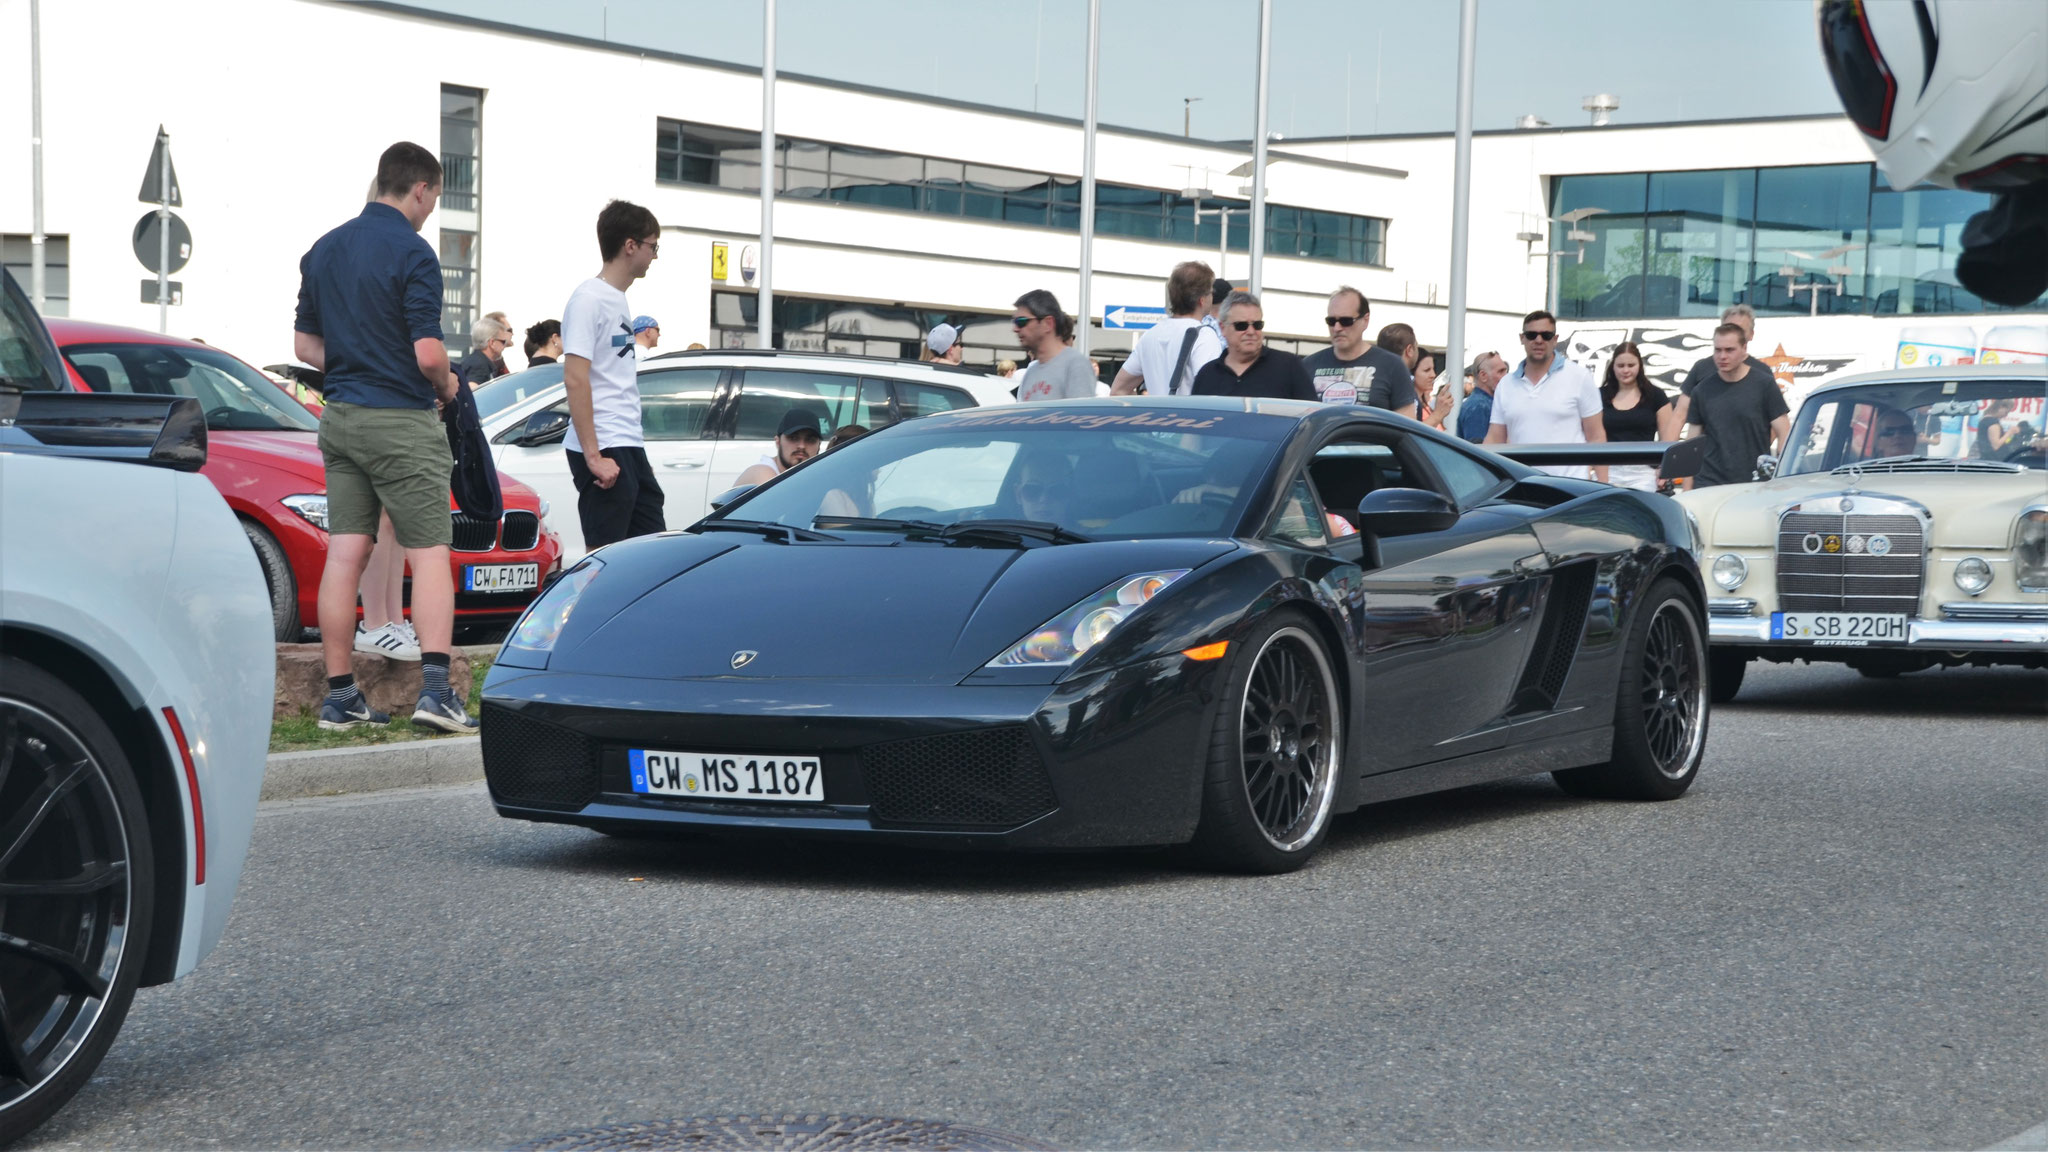 Lamborghini Gallardo Coupé - CW-MS-1187